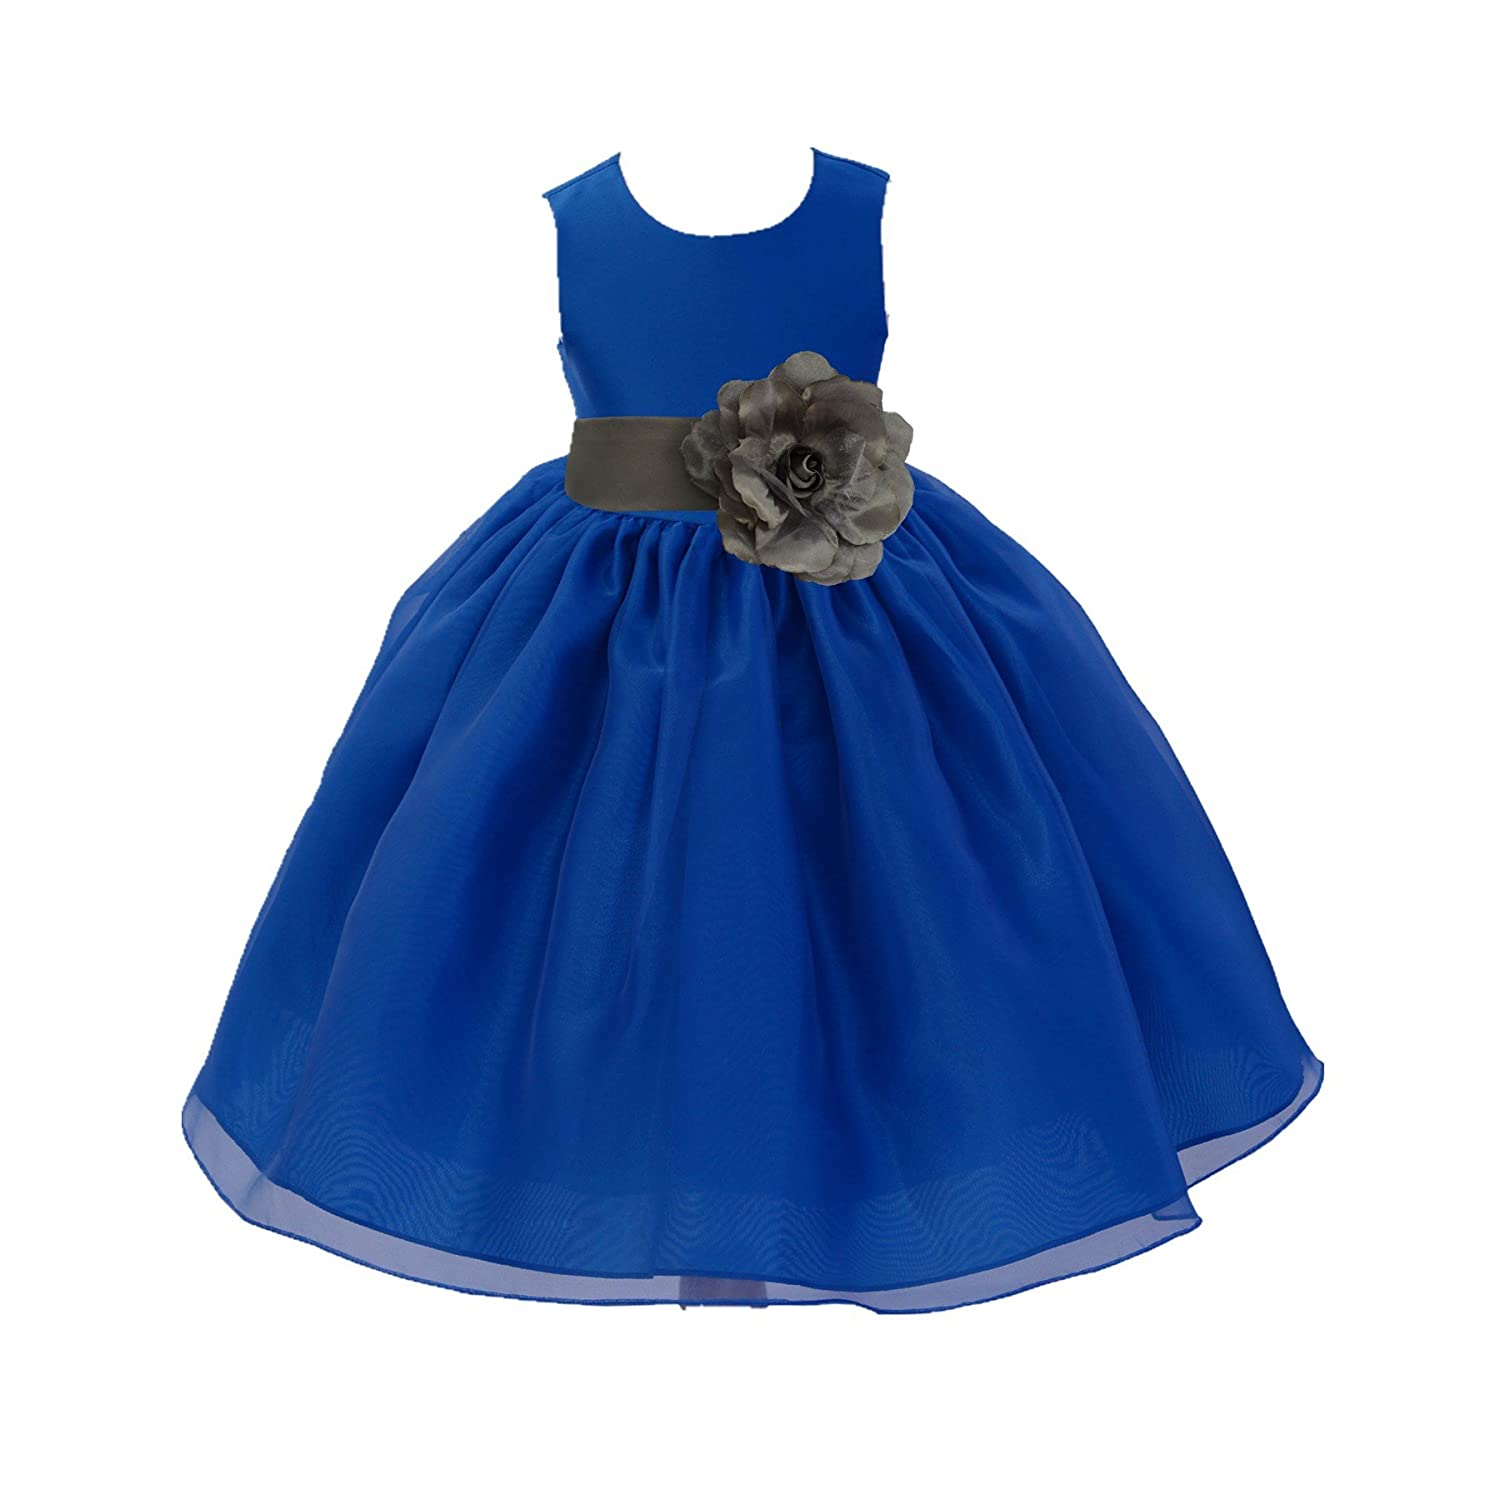 ekidsbridal Royal Blue Satin Bodice Organza Skirt Flower Girl Dresses Ballroom Gown 841S